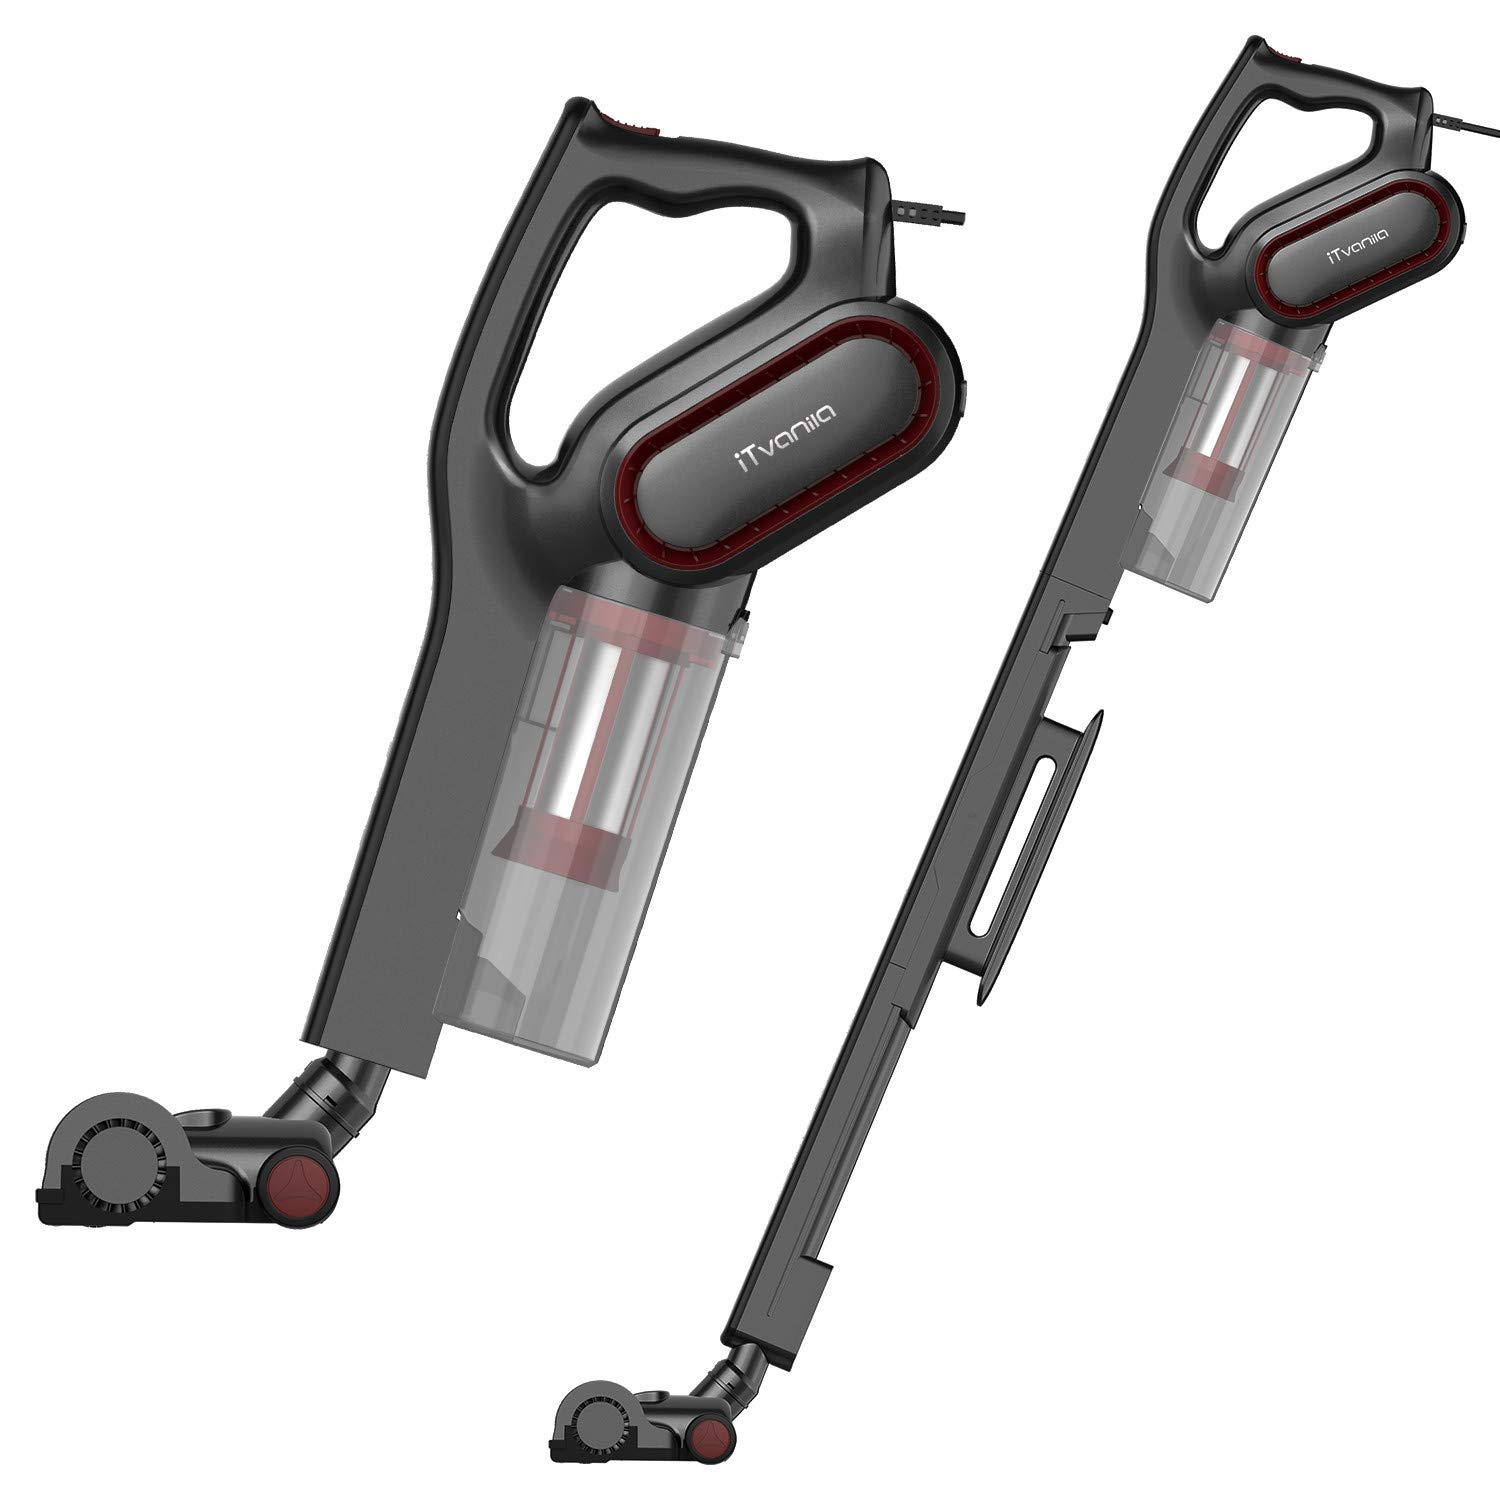 600W 15Kpa Corded 2 in 1 Handheld Bagless Upright Vacuum with HEPA Filtration